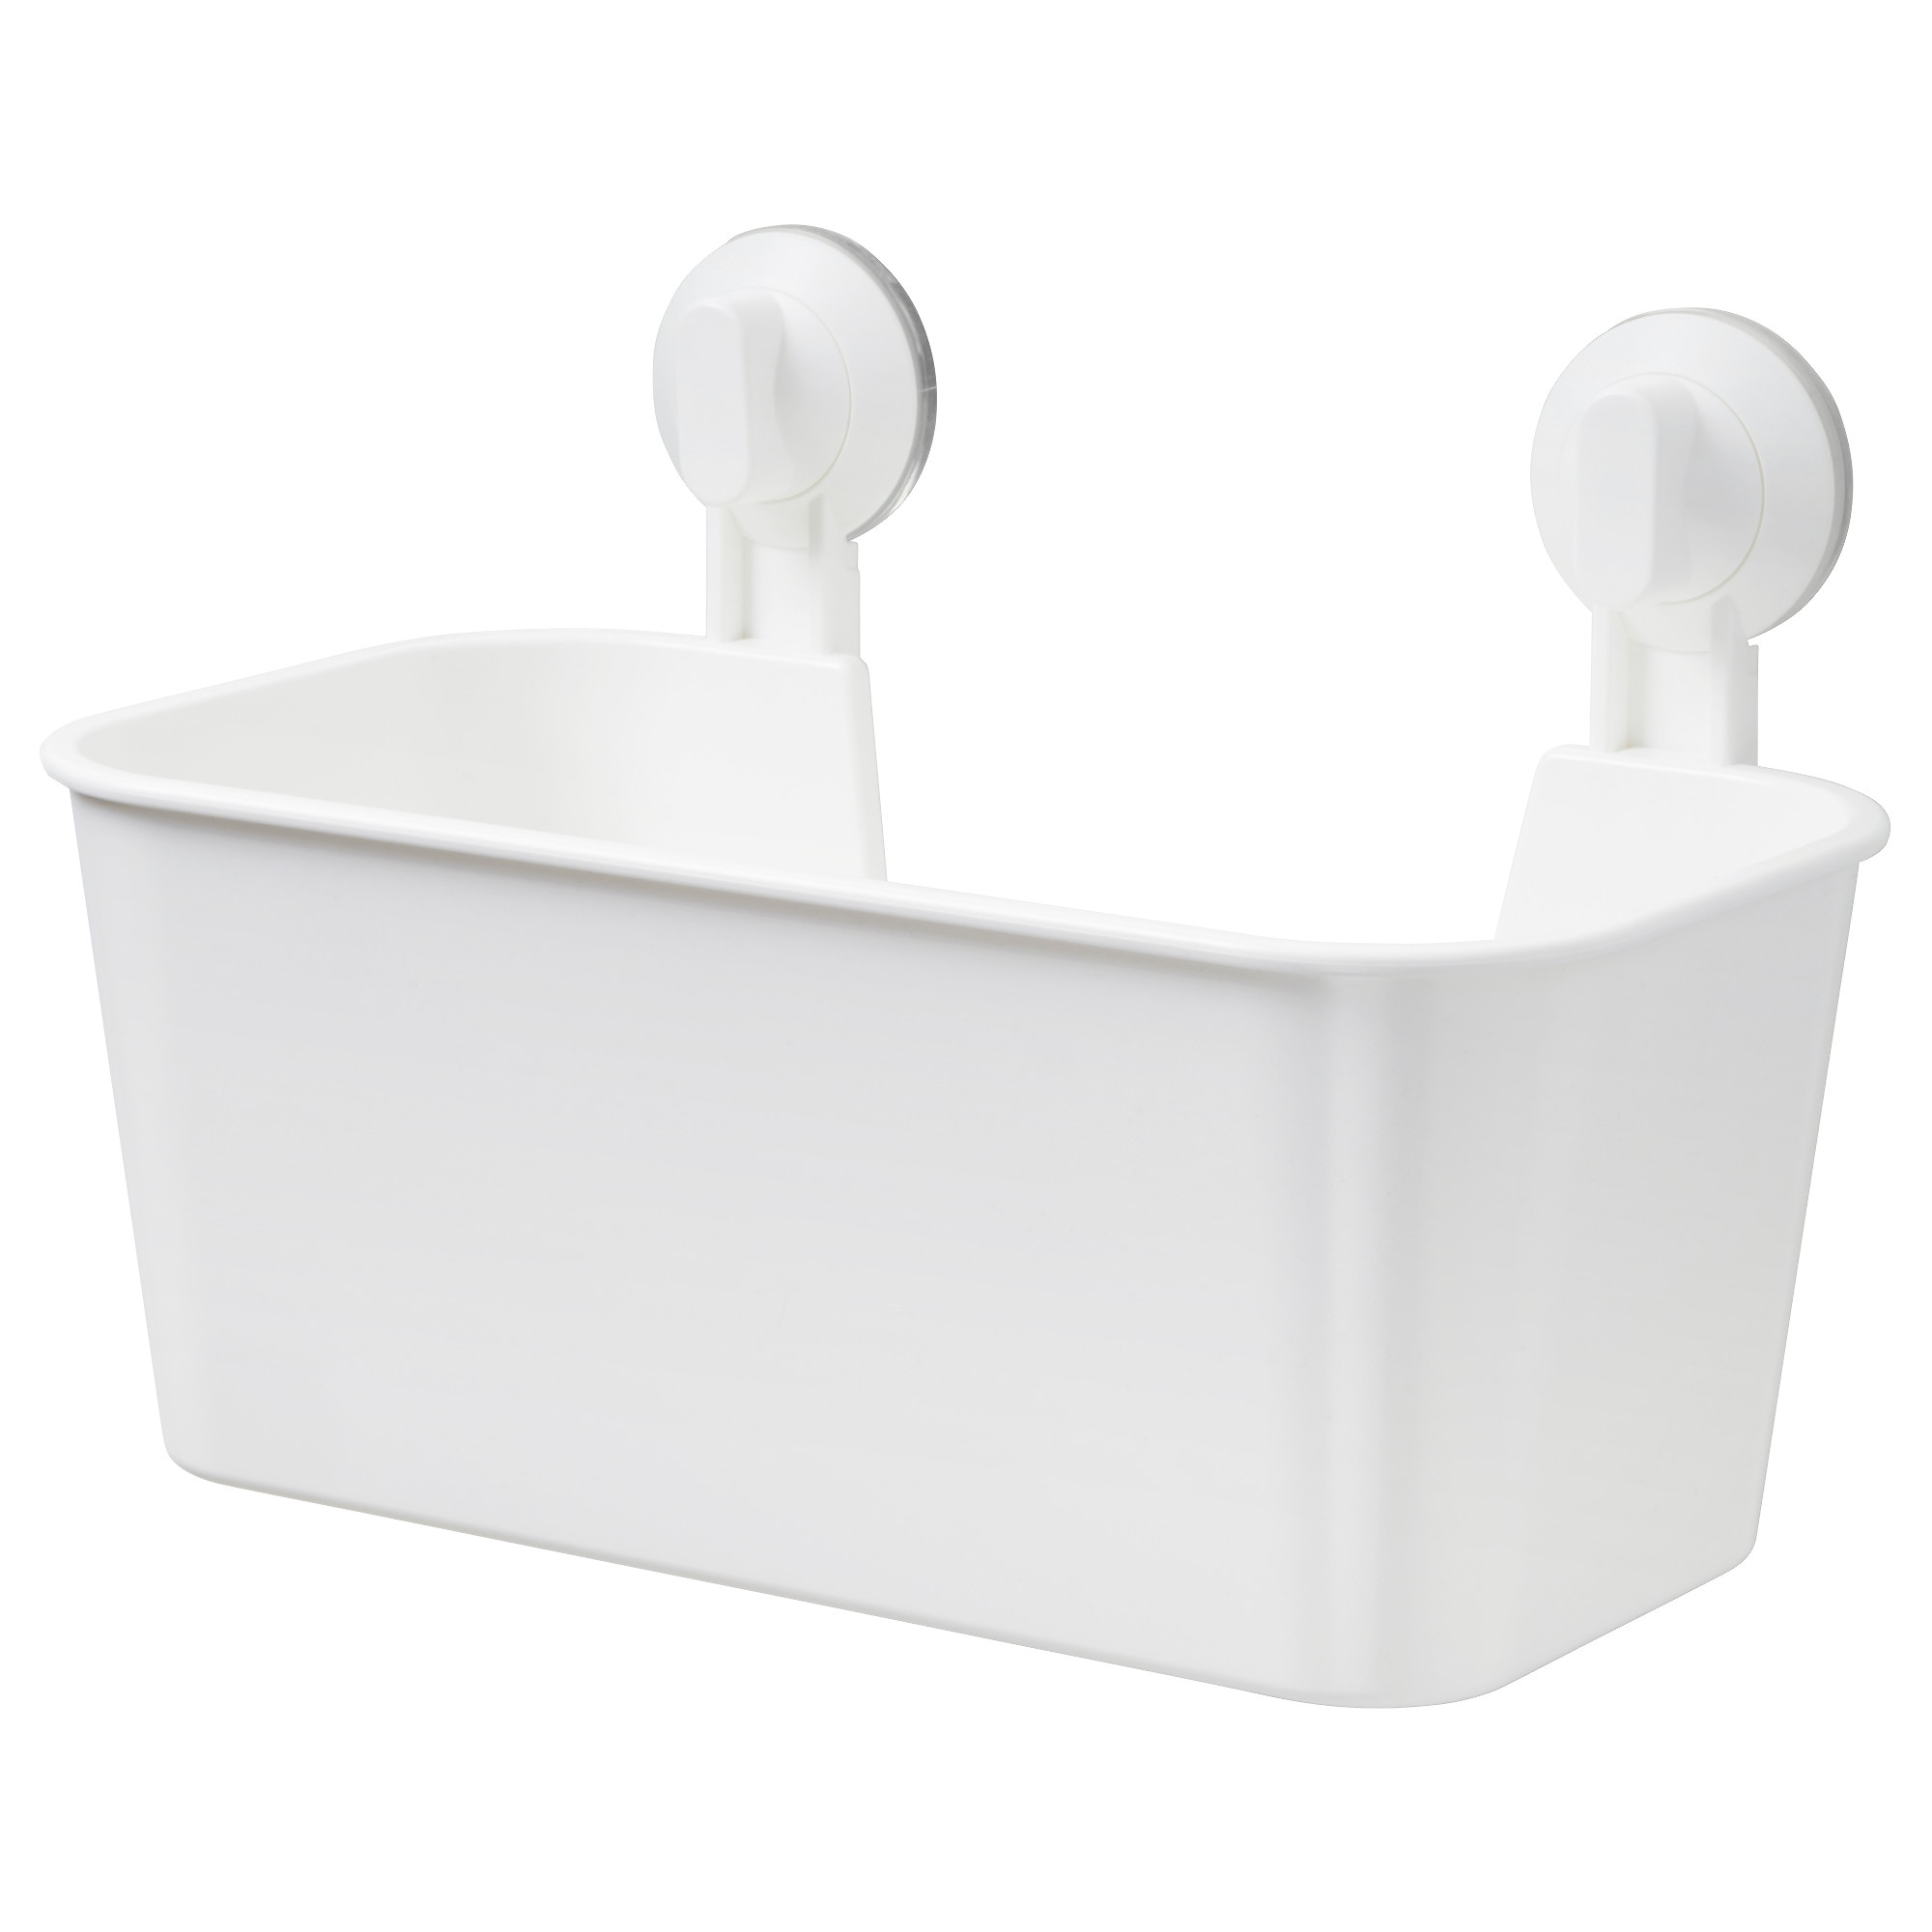 Suction Cup Bathroom Accessories Stugvik Basket With Suction Cup Ikea